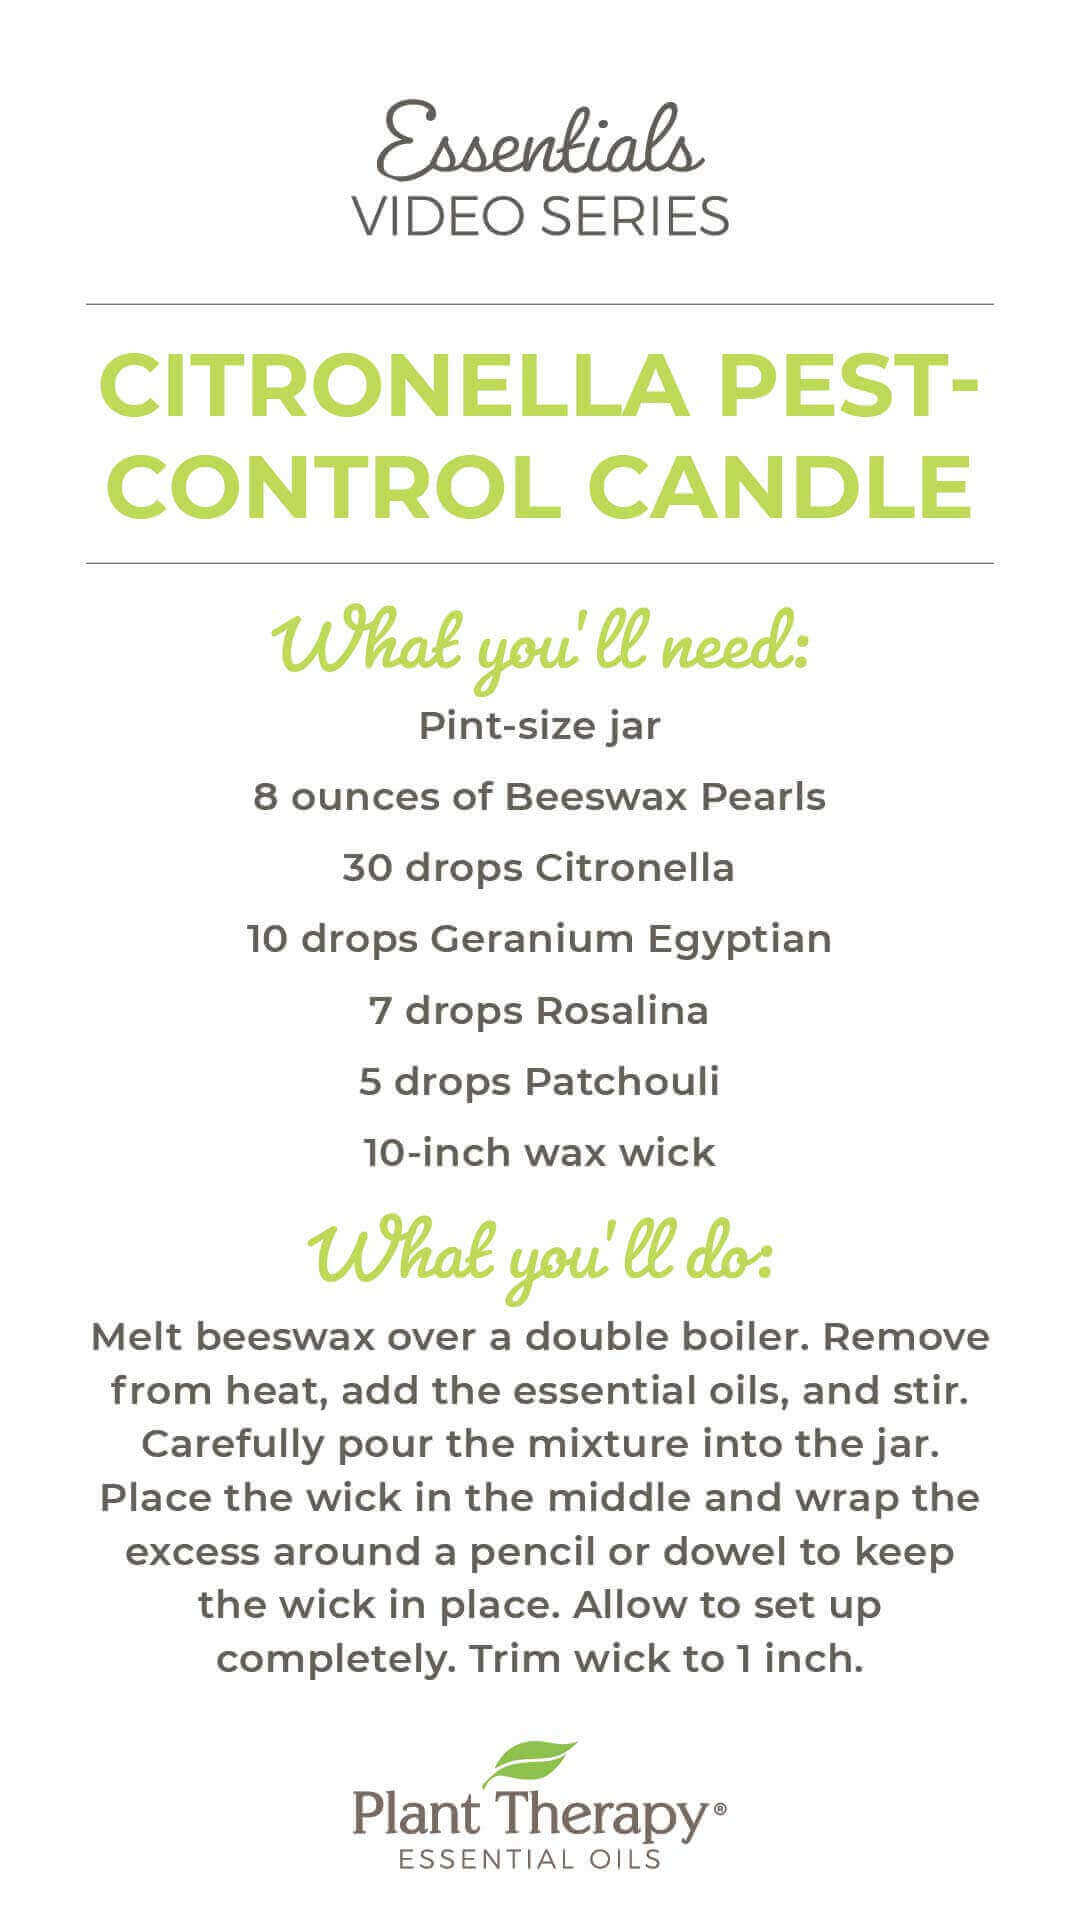 Essentials Video: Citronella Pest-Control Candle DIY